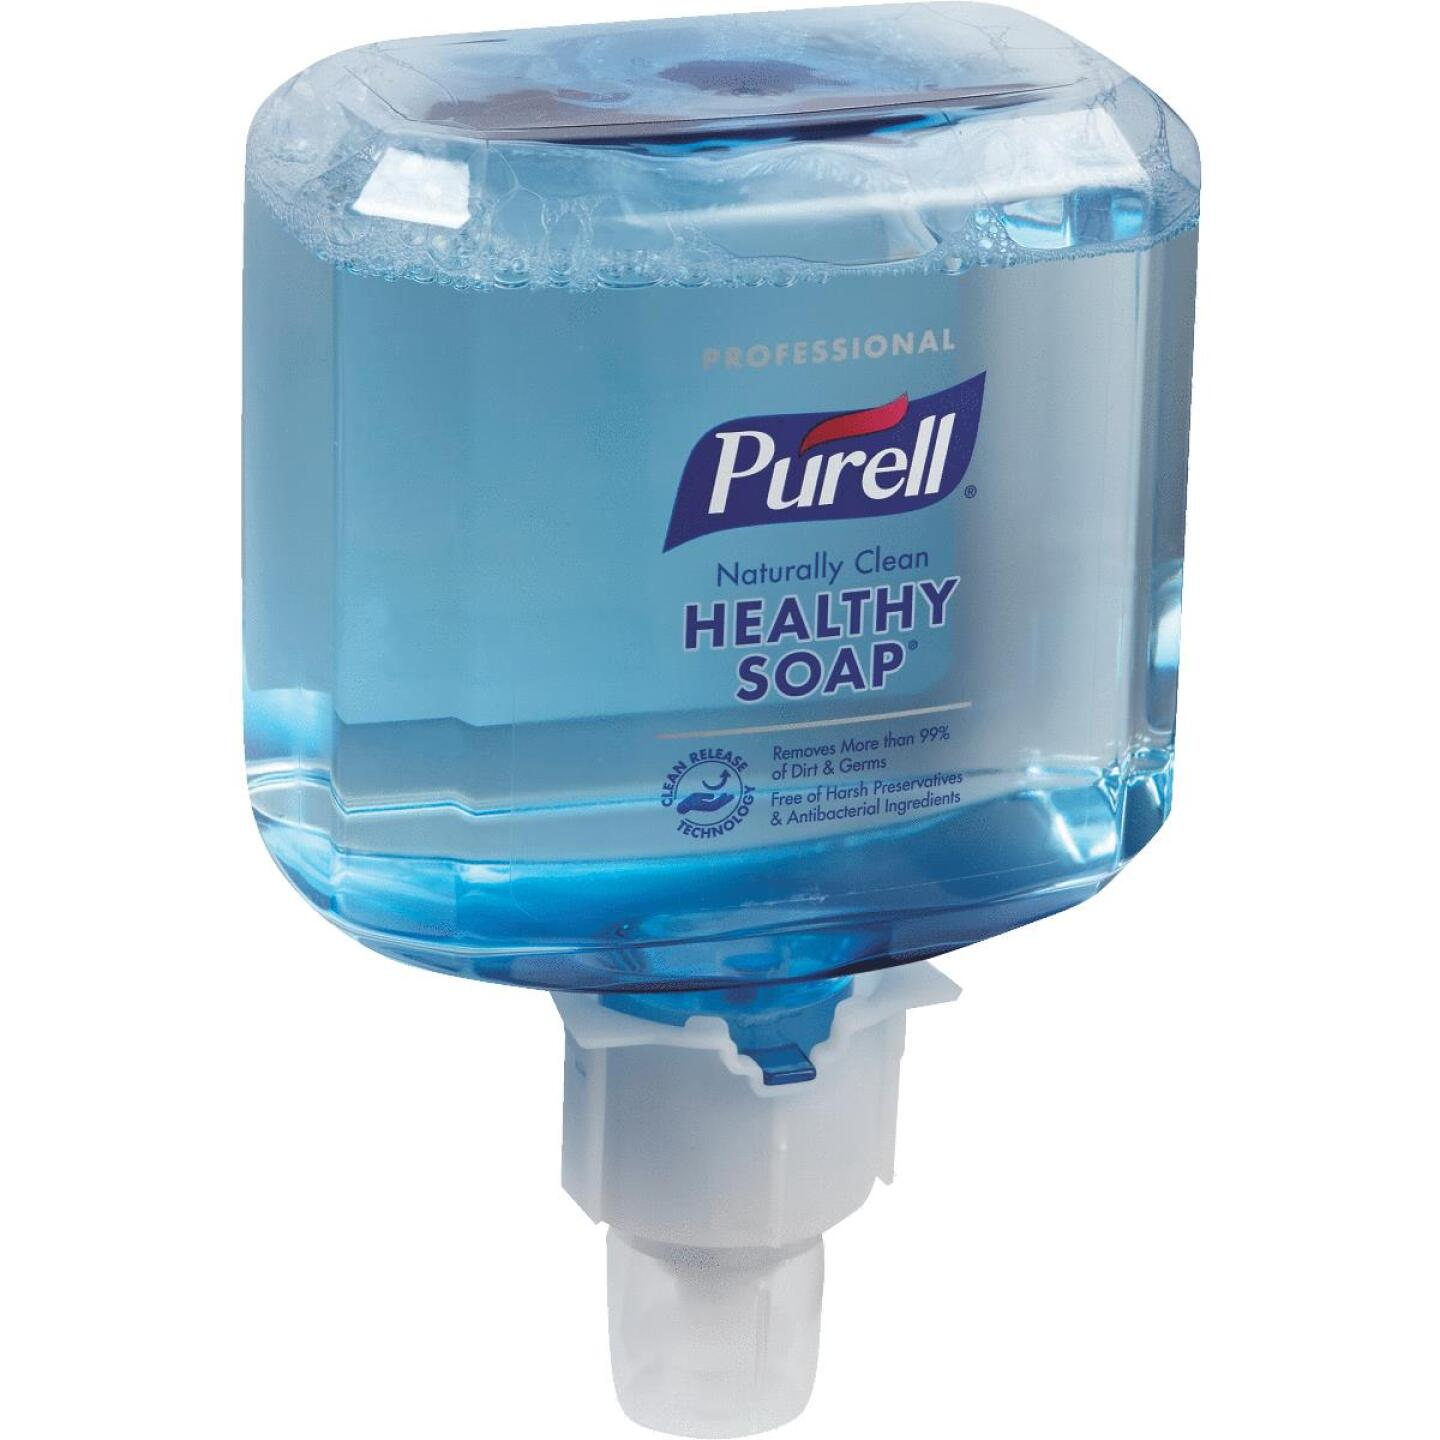 Purell ES4 Professional CRT Healthy Soap Foam 1200 mL Clean Scent Hand Cleaner for Push-Style Dispenser Image 1